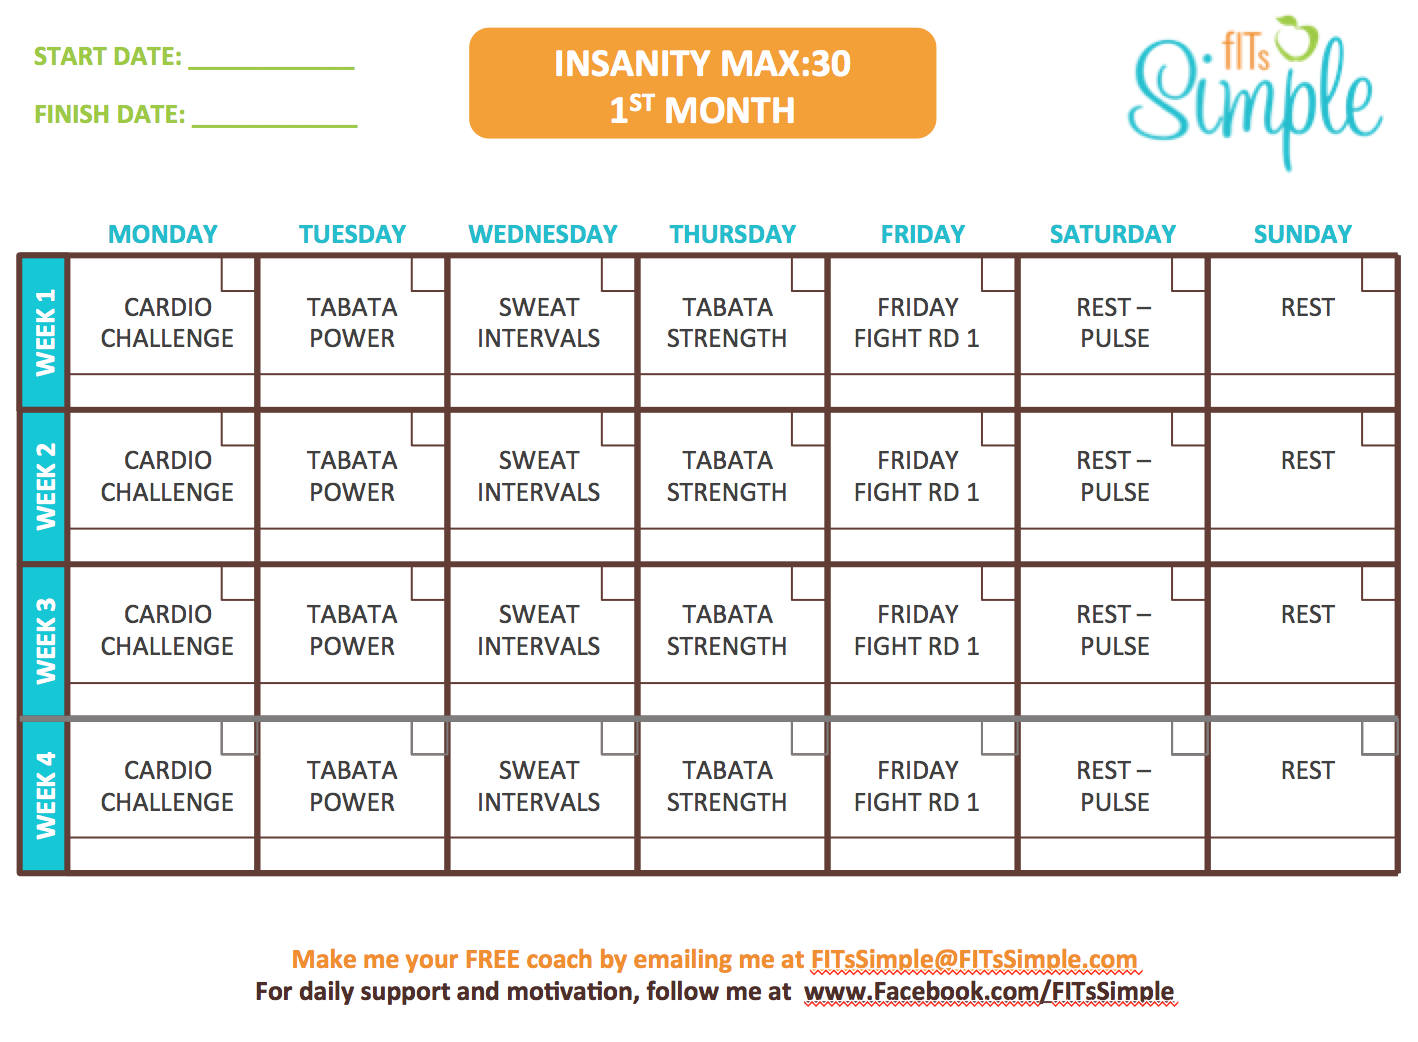 Insanity Max 30 Workout Calendar FREE DOWNLOAD!! Max Out - 1418x1042 ...